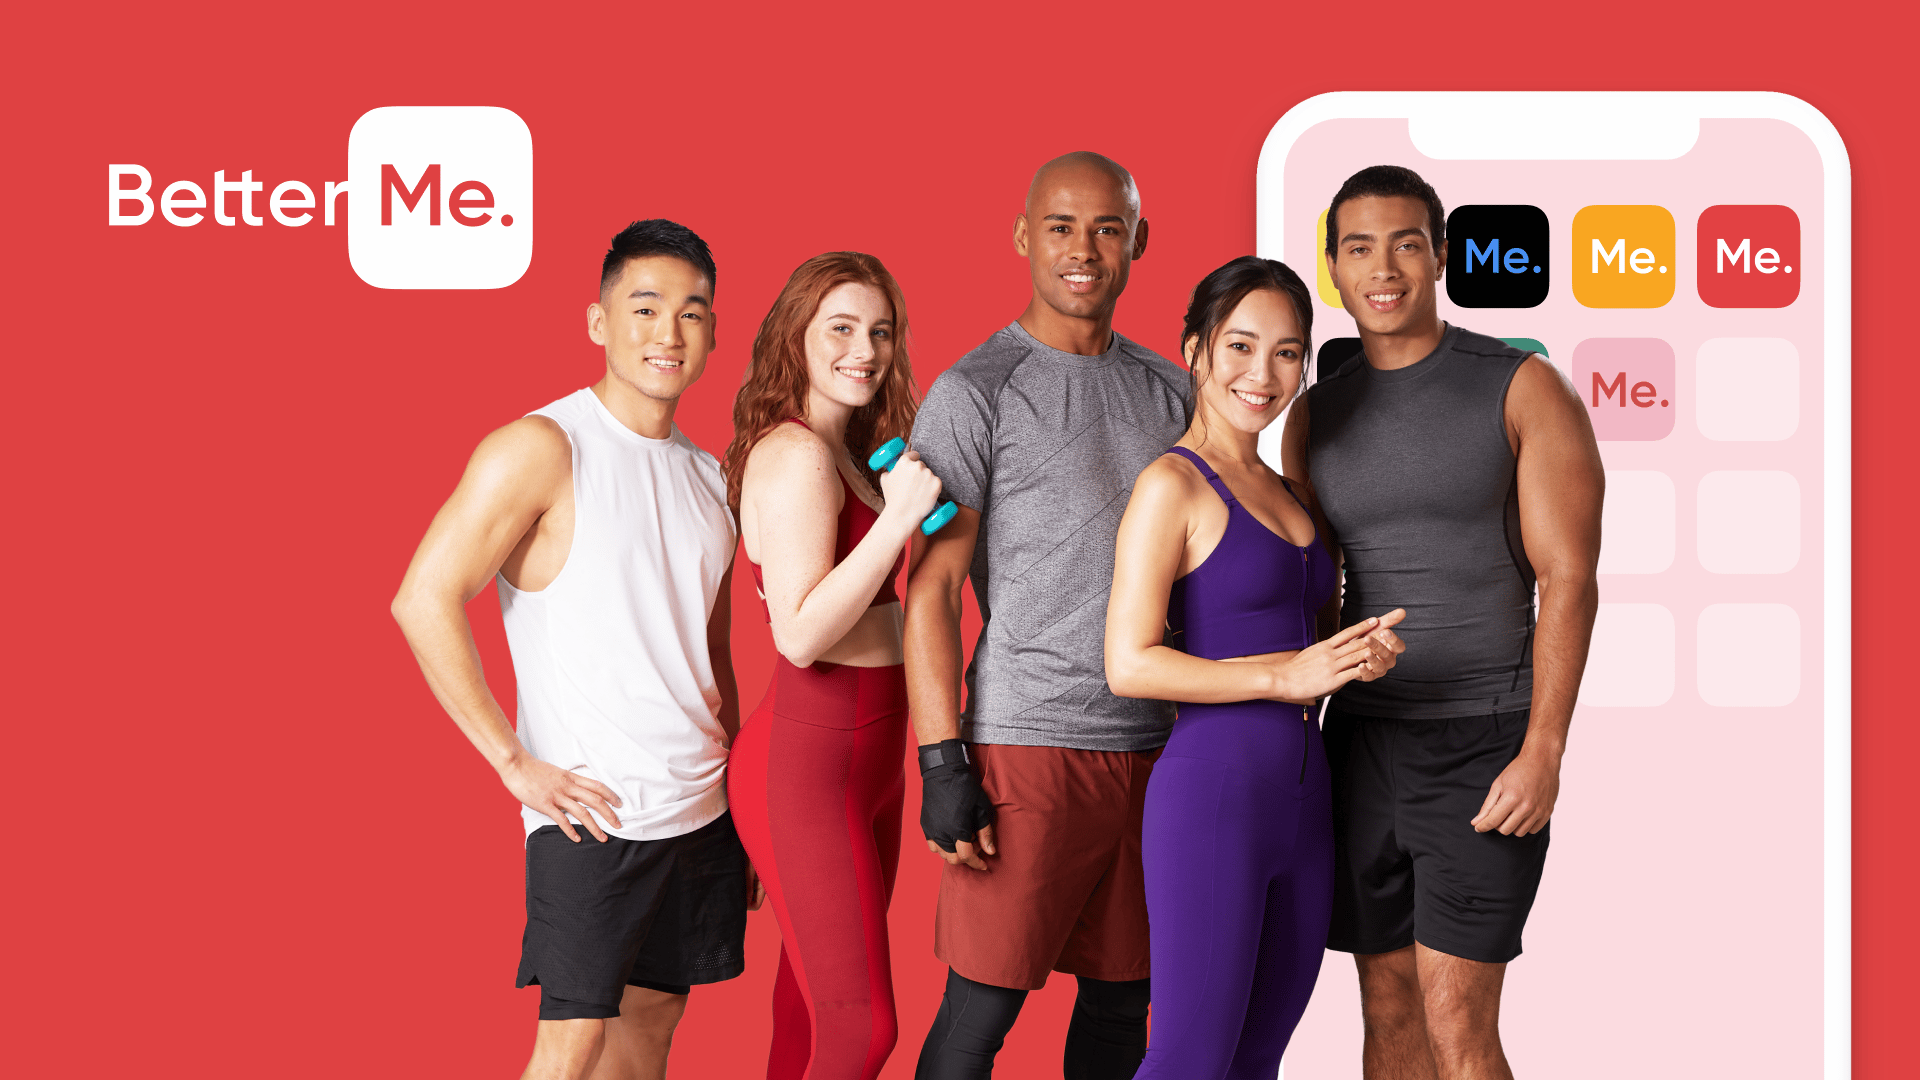 BetterMe App: Your Personal Coach for Home Workout & Diet